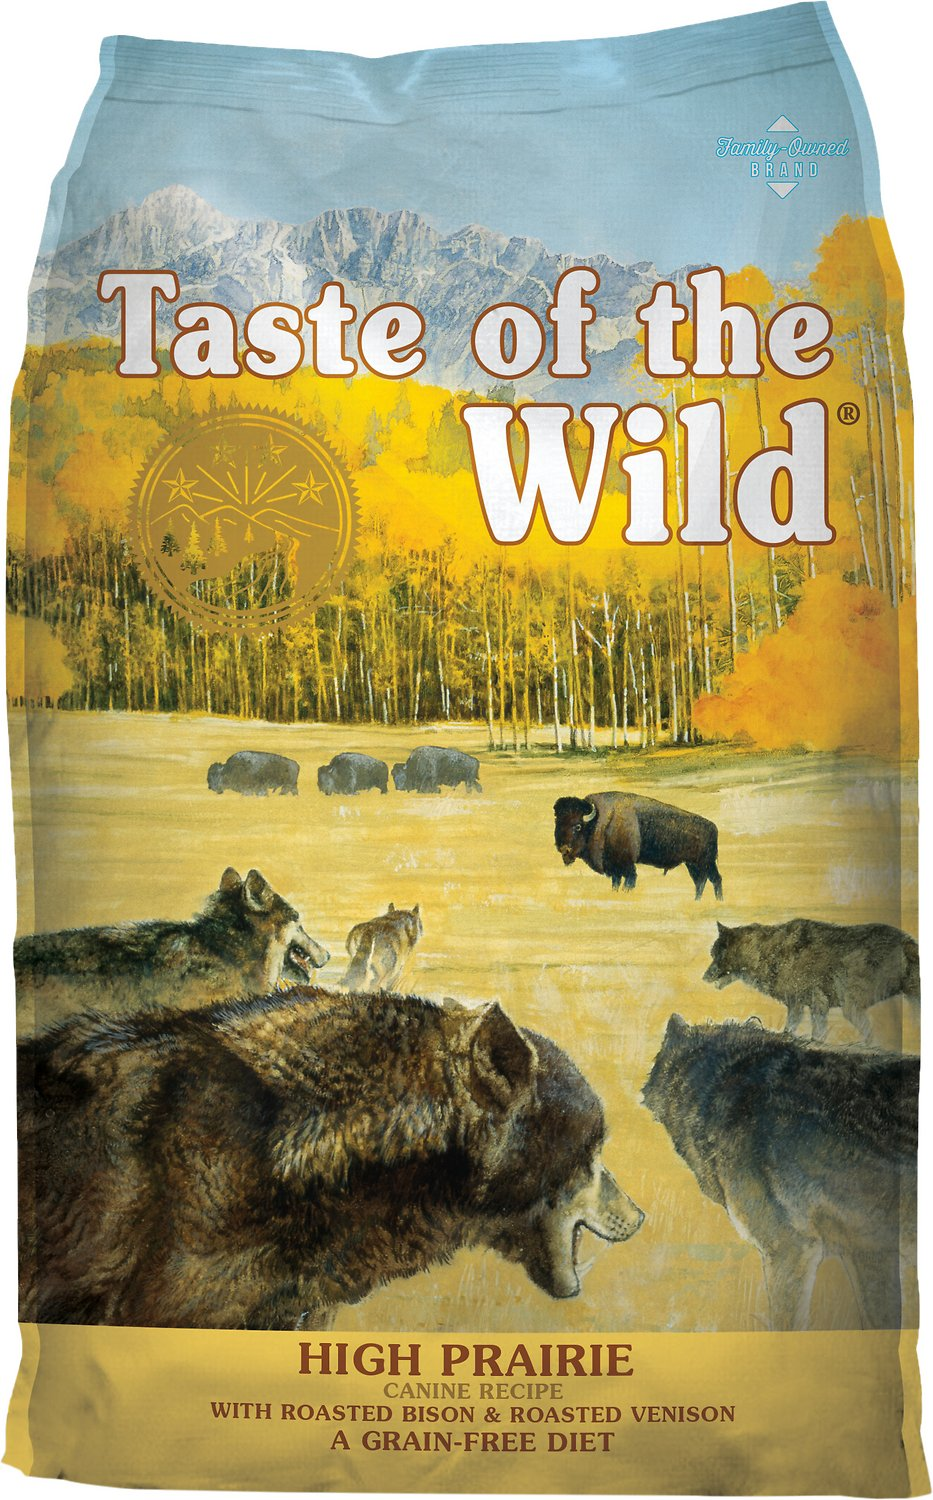 Taste of the Wild High Prairie Grain-Free Dry Dog Food Image